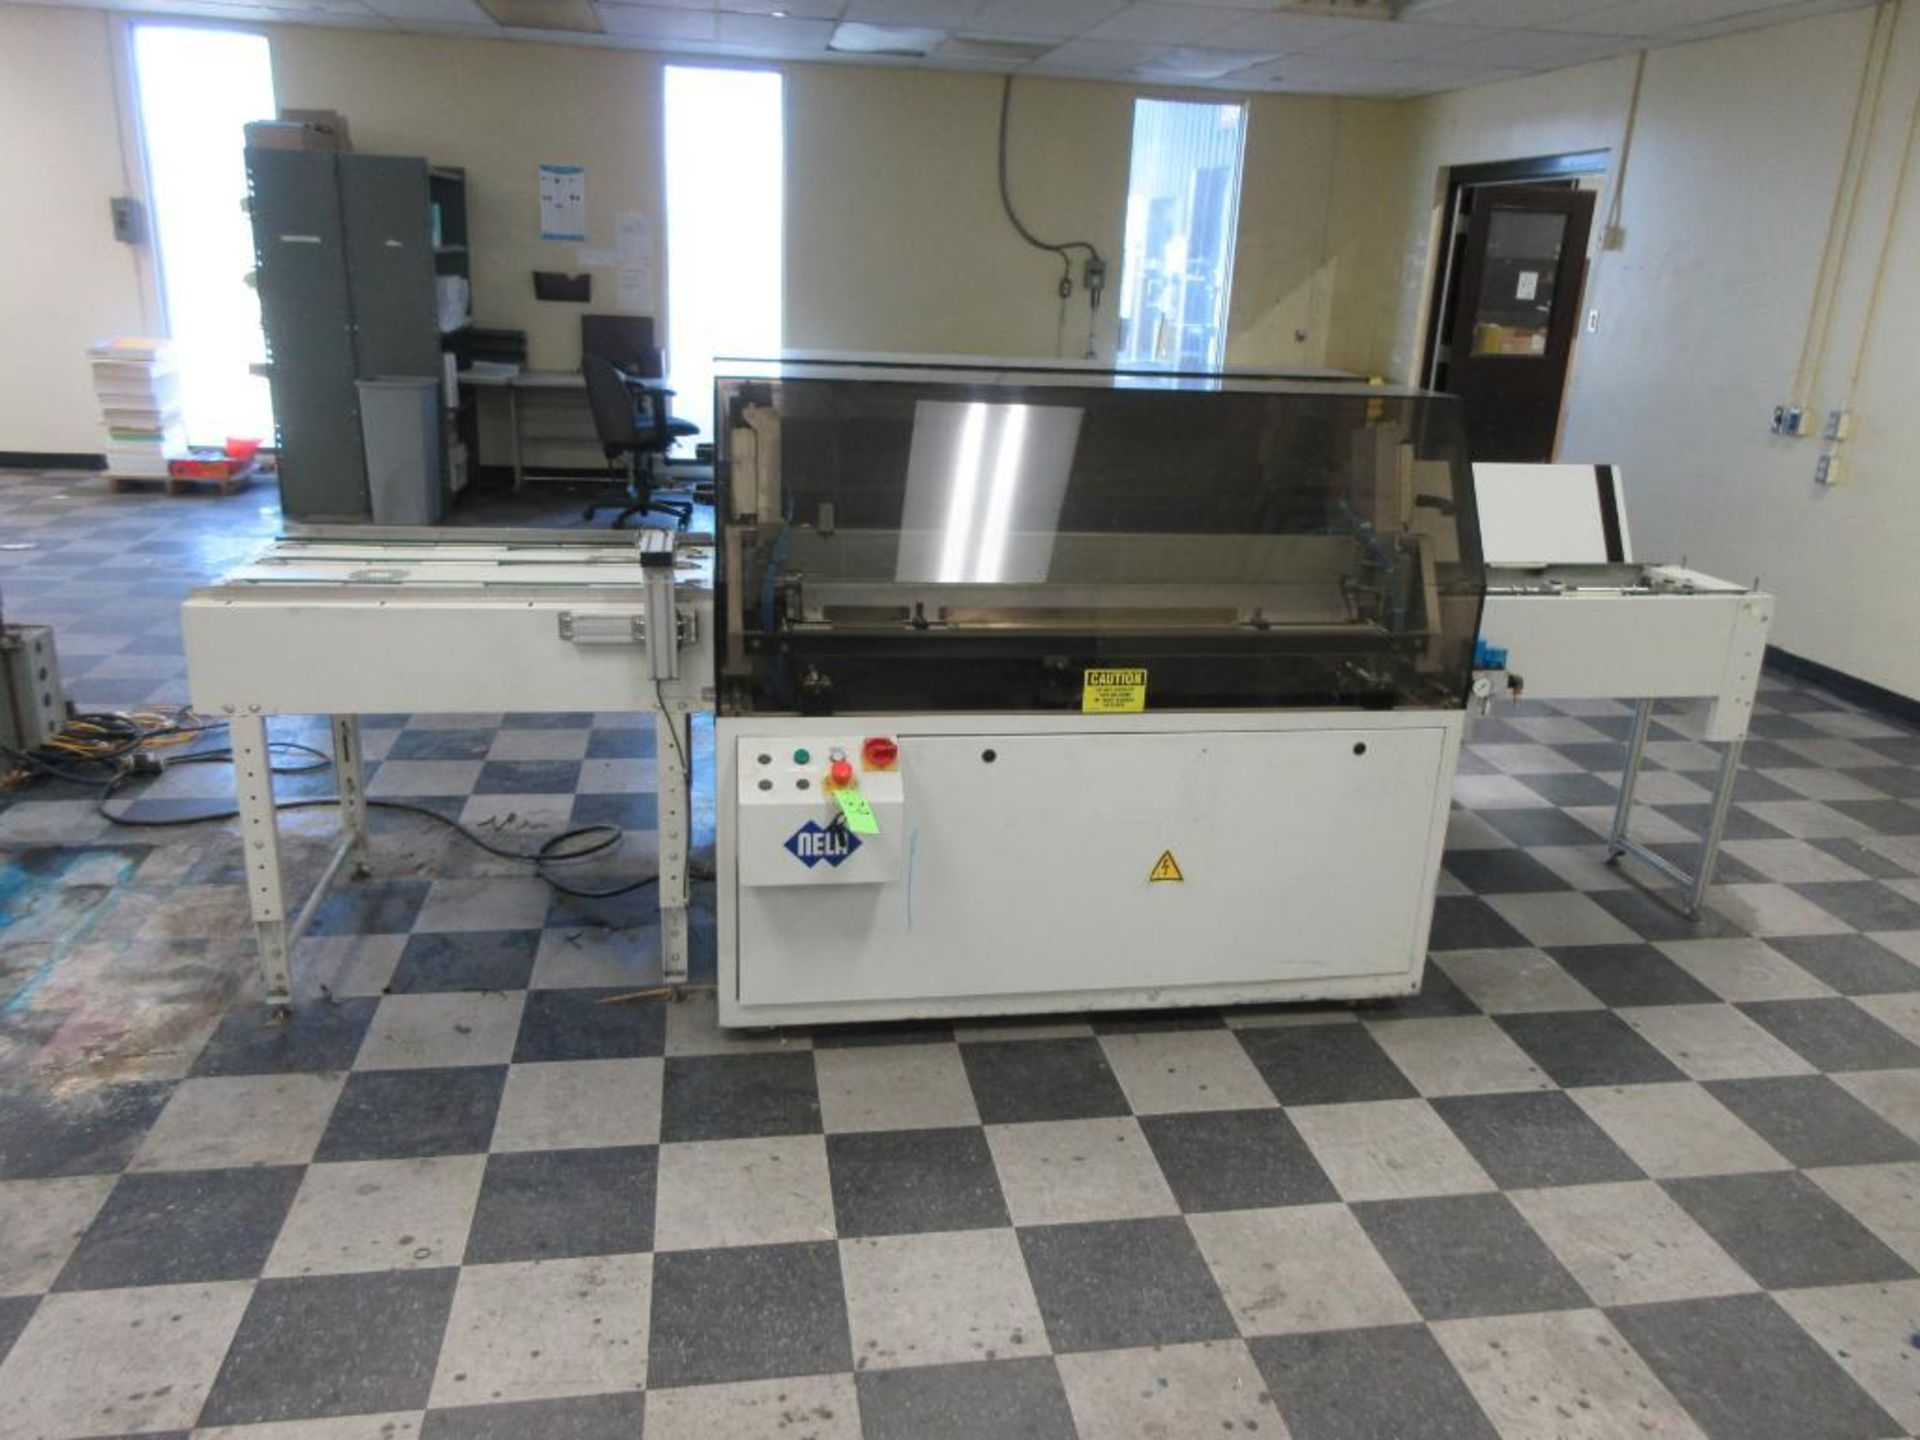 """Nela plate punch / bender model Benchmark 0657-01, 40"""" infeed conveyor, 60"""" bend table, 40"""" outfeed - Image 2 of 6"""